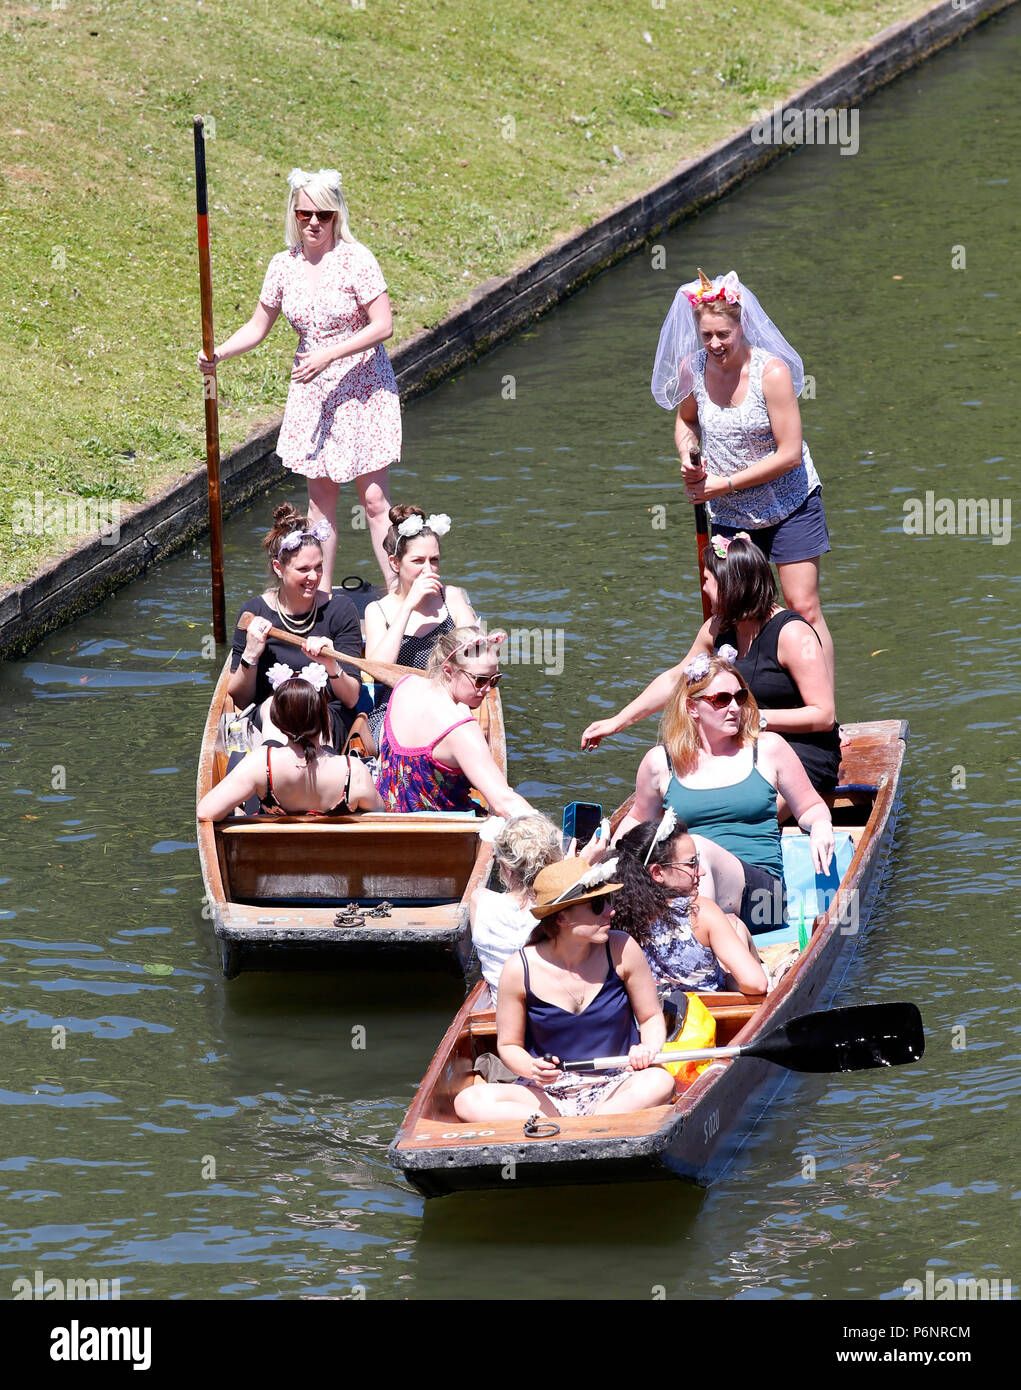 Tourists enjoy the hot weather punting on the River Cam, Cambridge - Stock Image